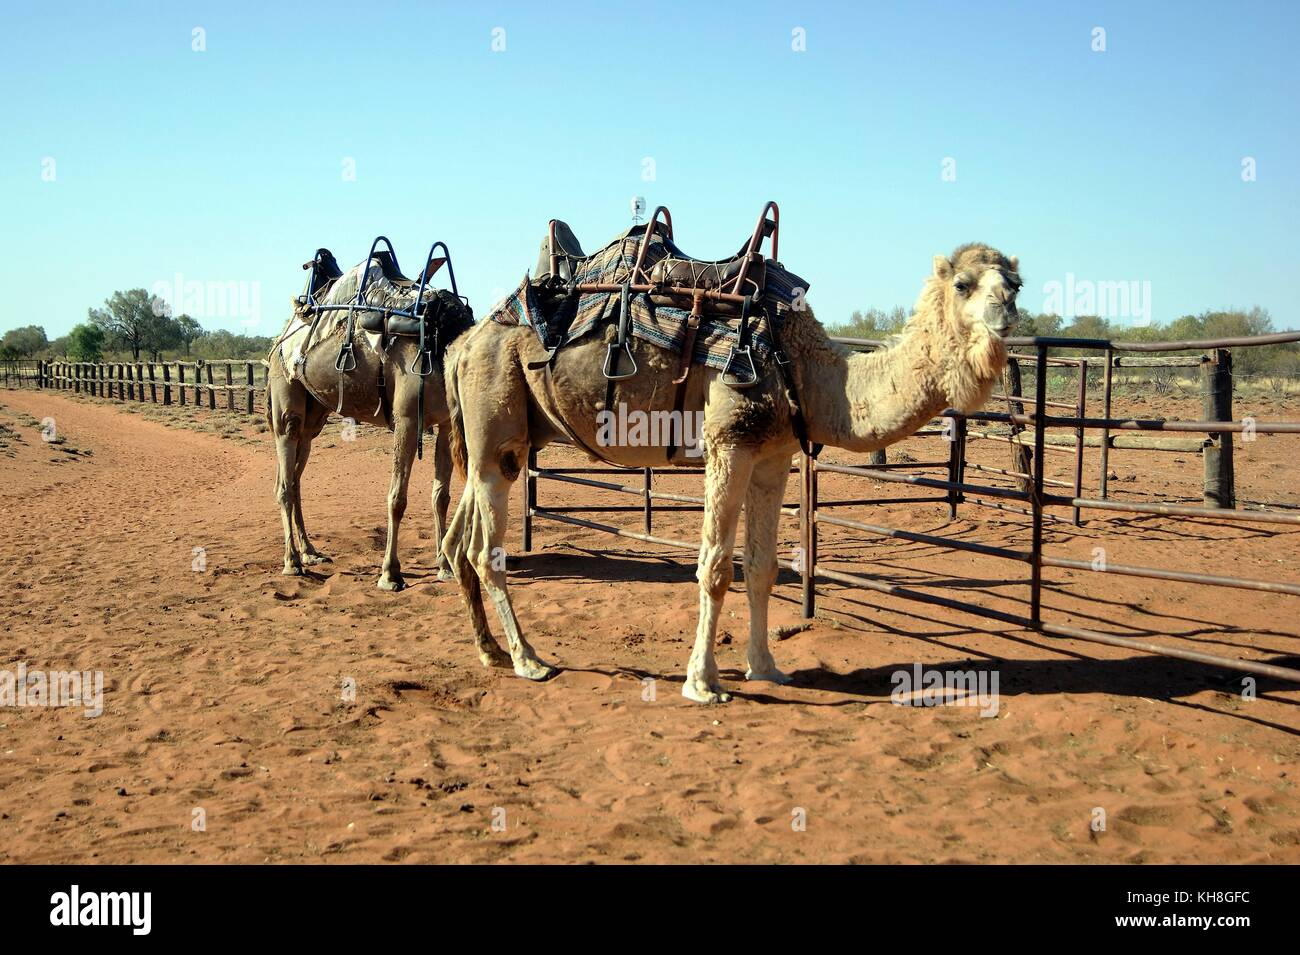 Camel Farm, Alice Springs, Australia - Stock Image